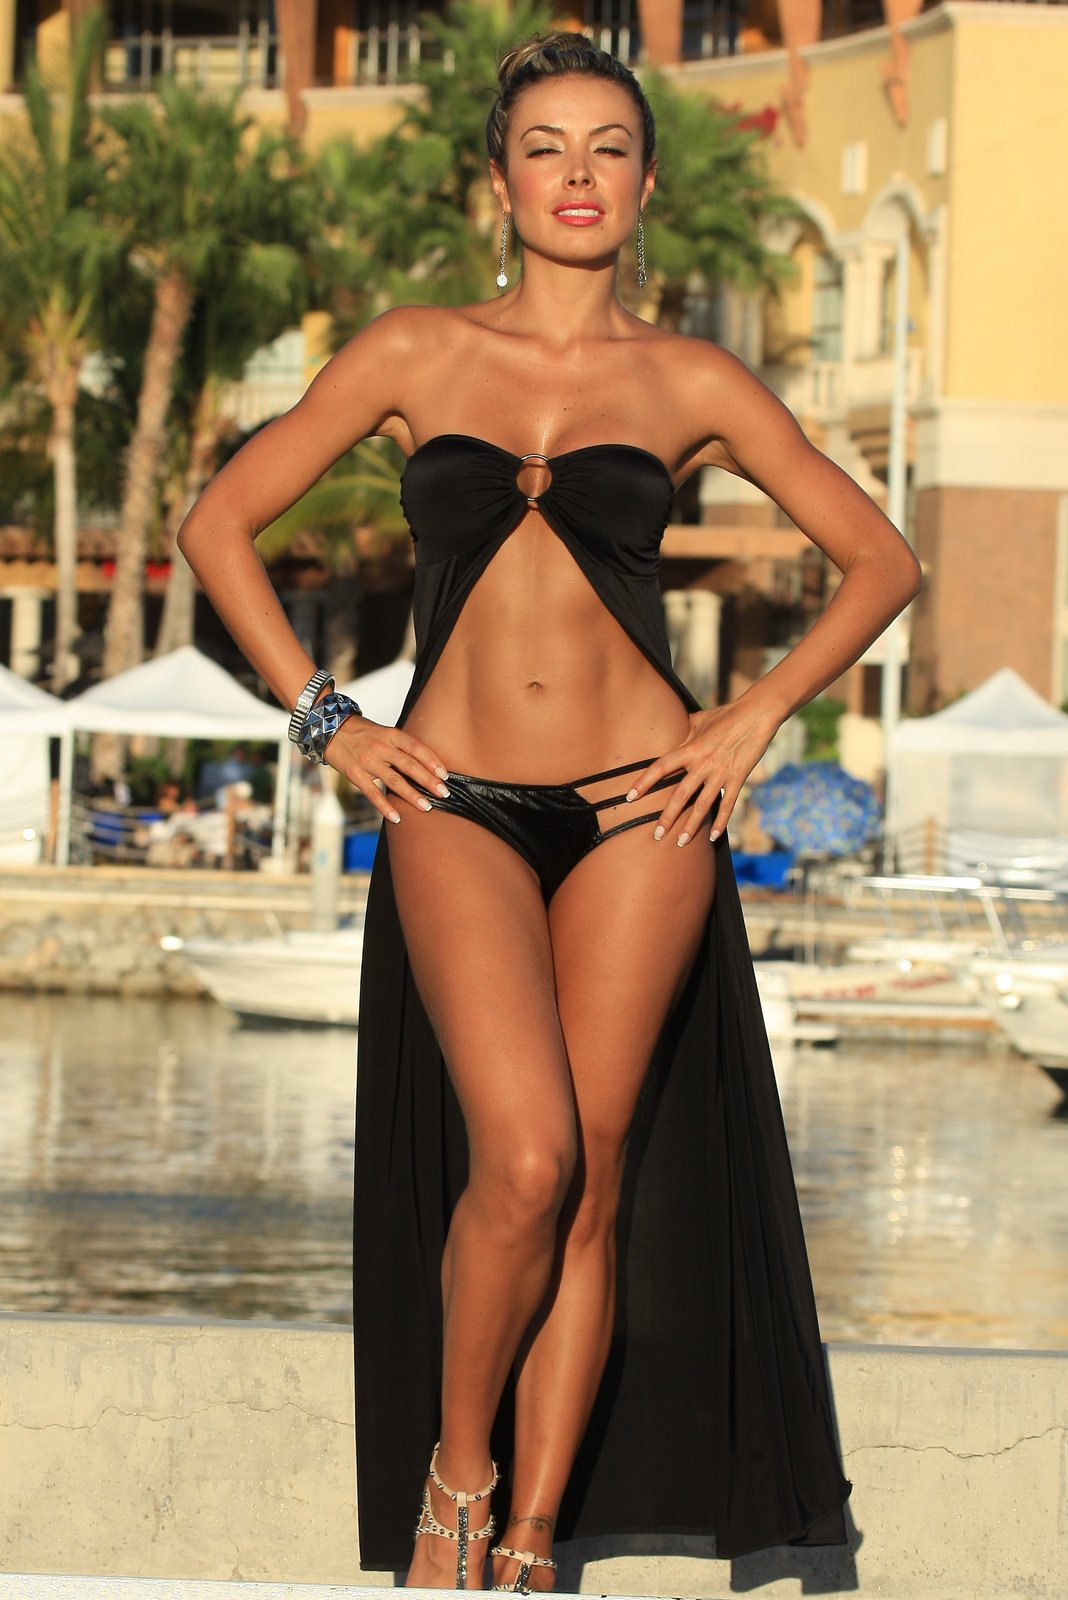 ed60deded8 Sexy Soho Cover Up - Made in USA by UjENA Swimwear